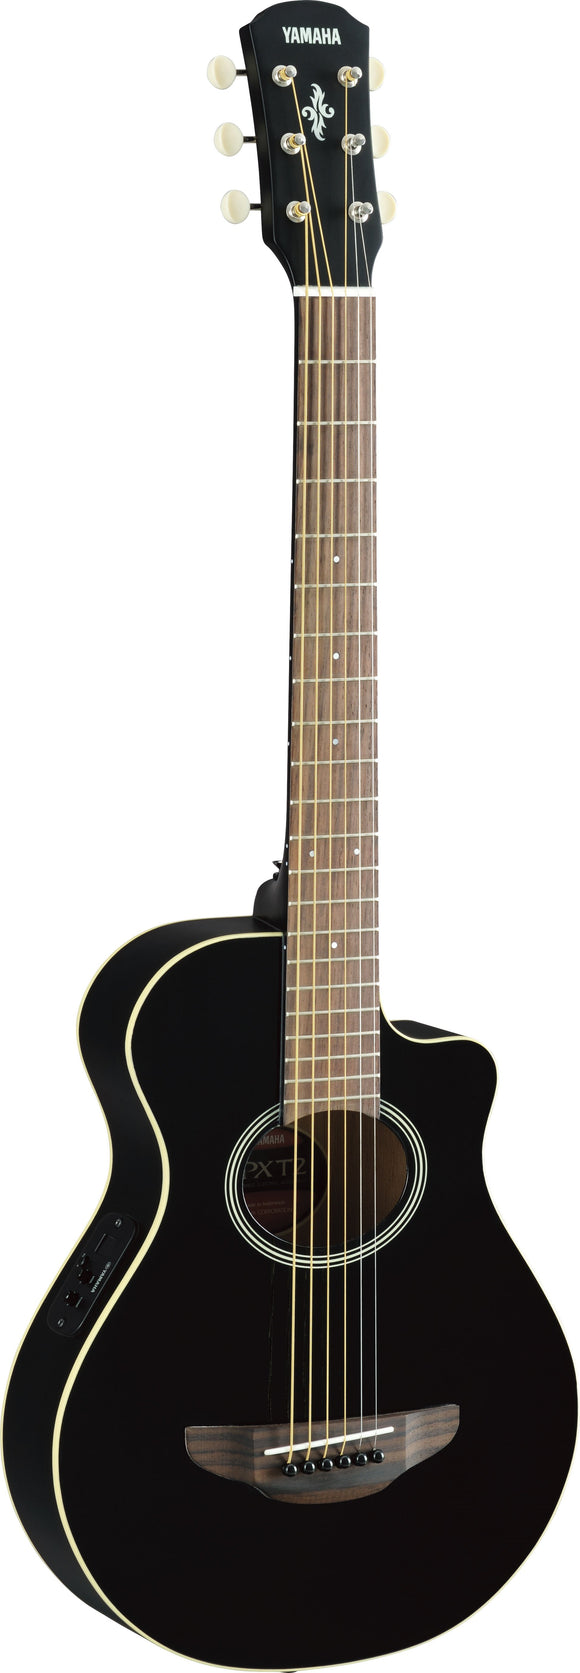 Yamaha APXT2 3/4 size acoustic-electric guitar (Black)